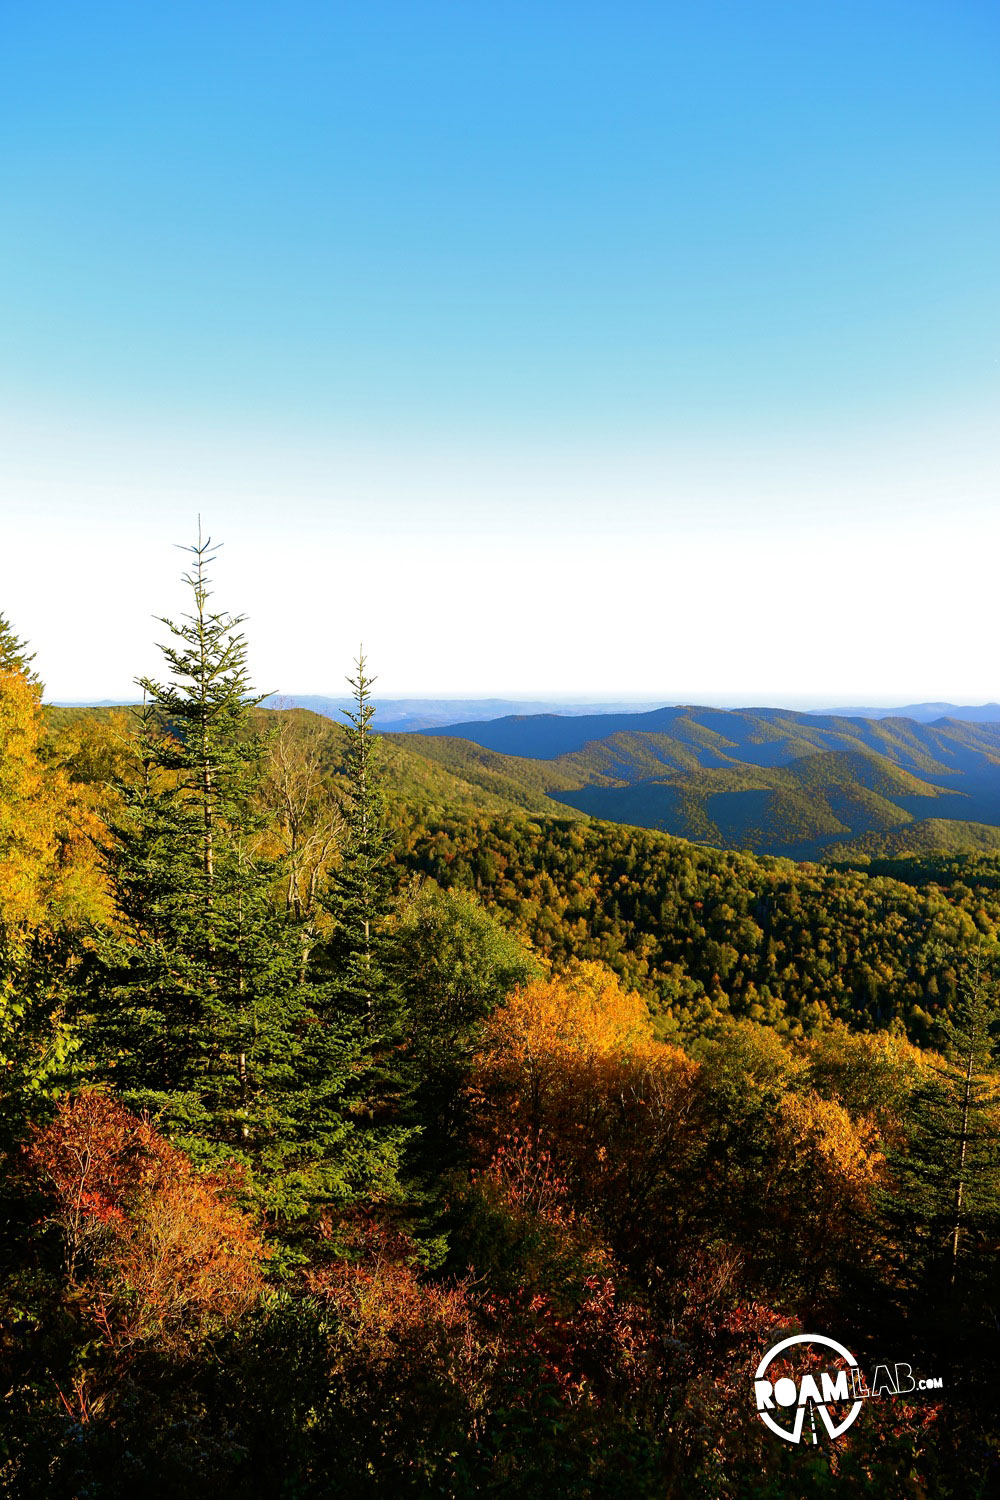 Fall colors on display along the many vistas of the Blue Ridge Parkway.